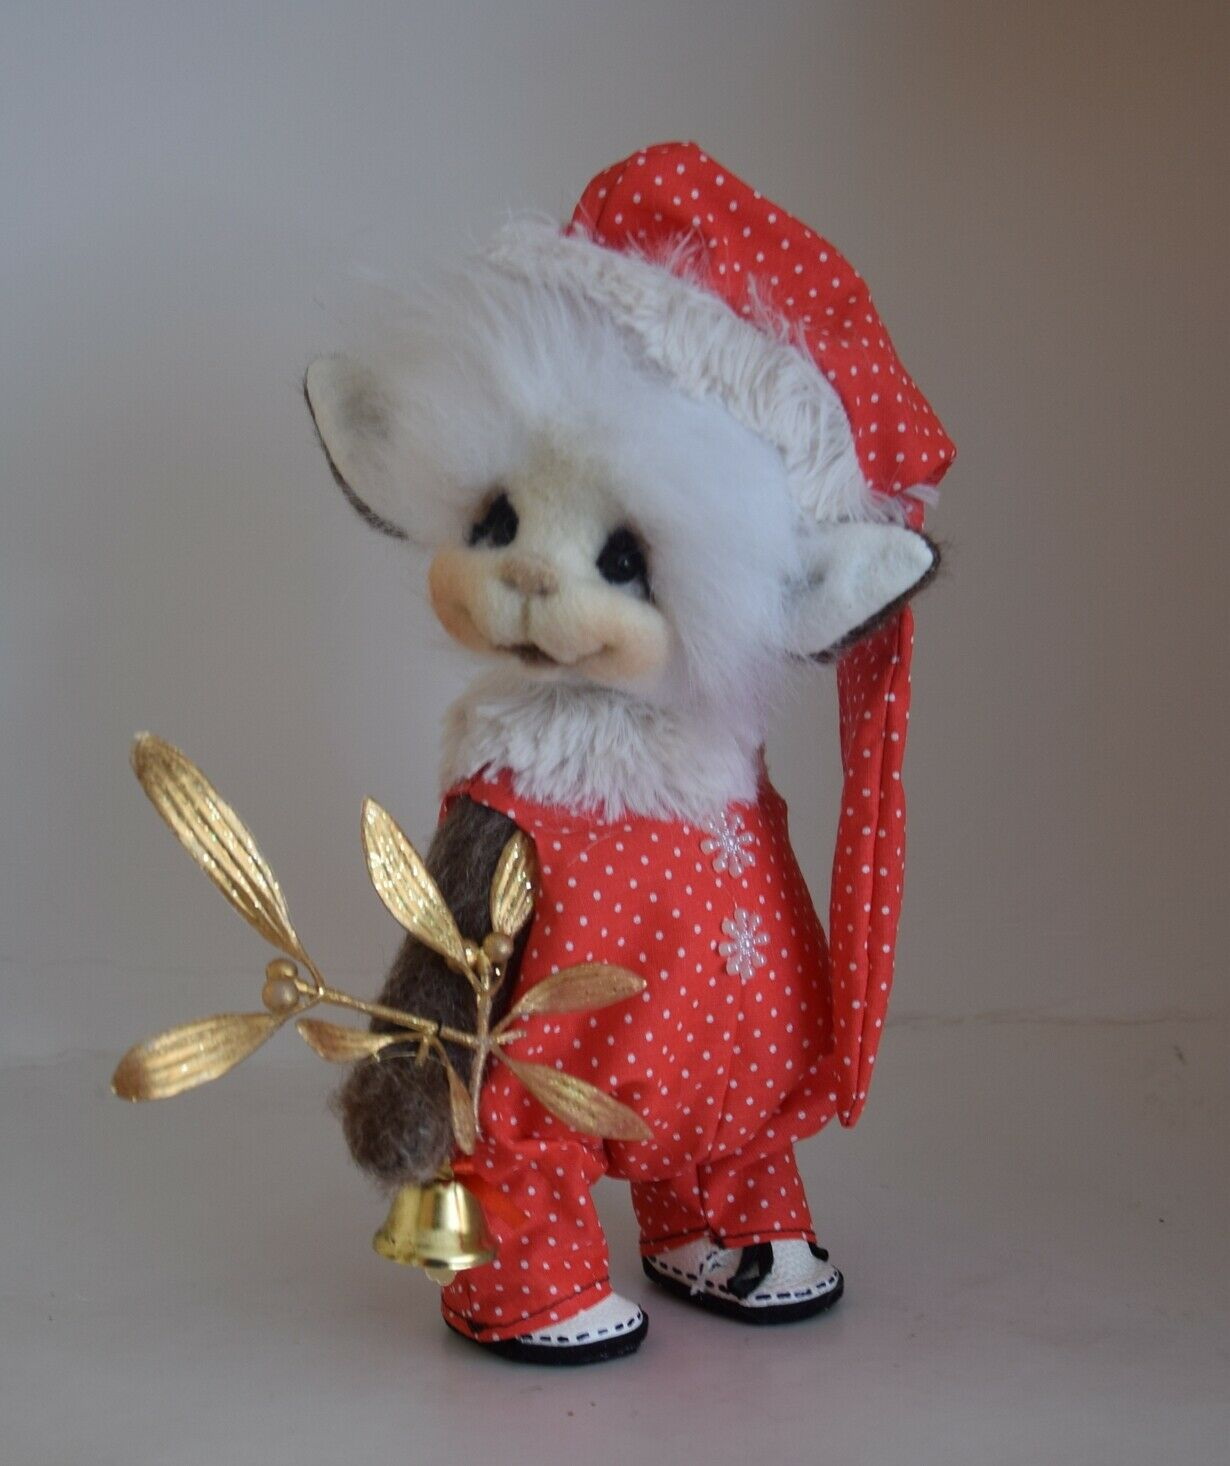 OOAK Erummelde is a Christmas Elf 22 cm (8,8 ) tall Manufacturot with 5 joints